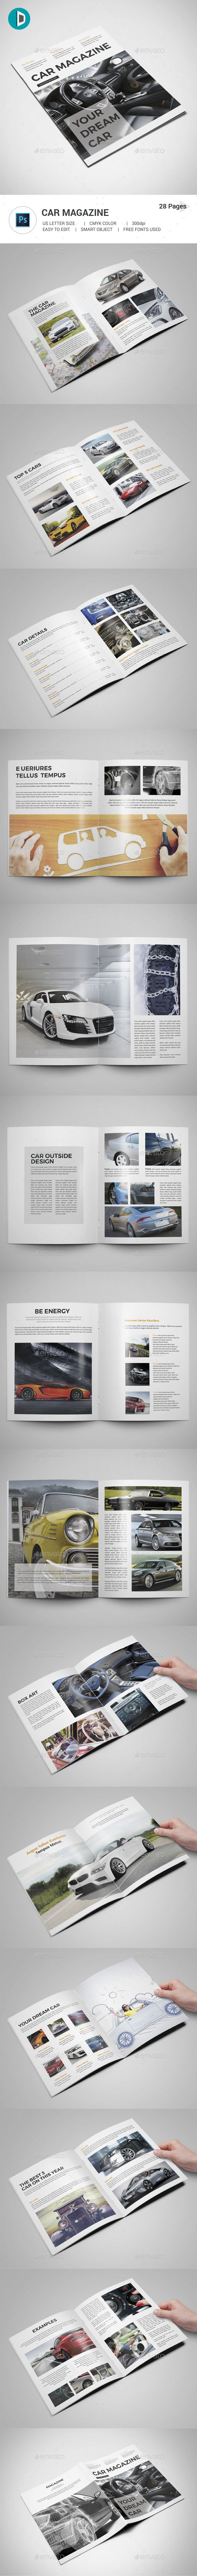 Car Magazine - Magazines Print Templates Download here : https://graphicriver.net/item/car-magazine/19452141?s_rank=33&ref=Al-fatih